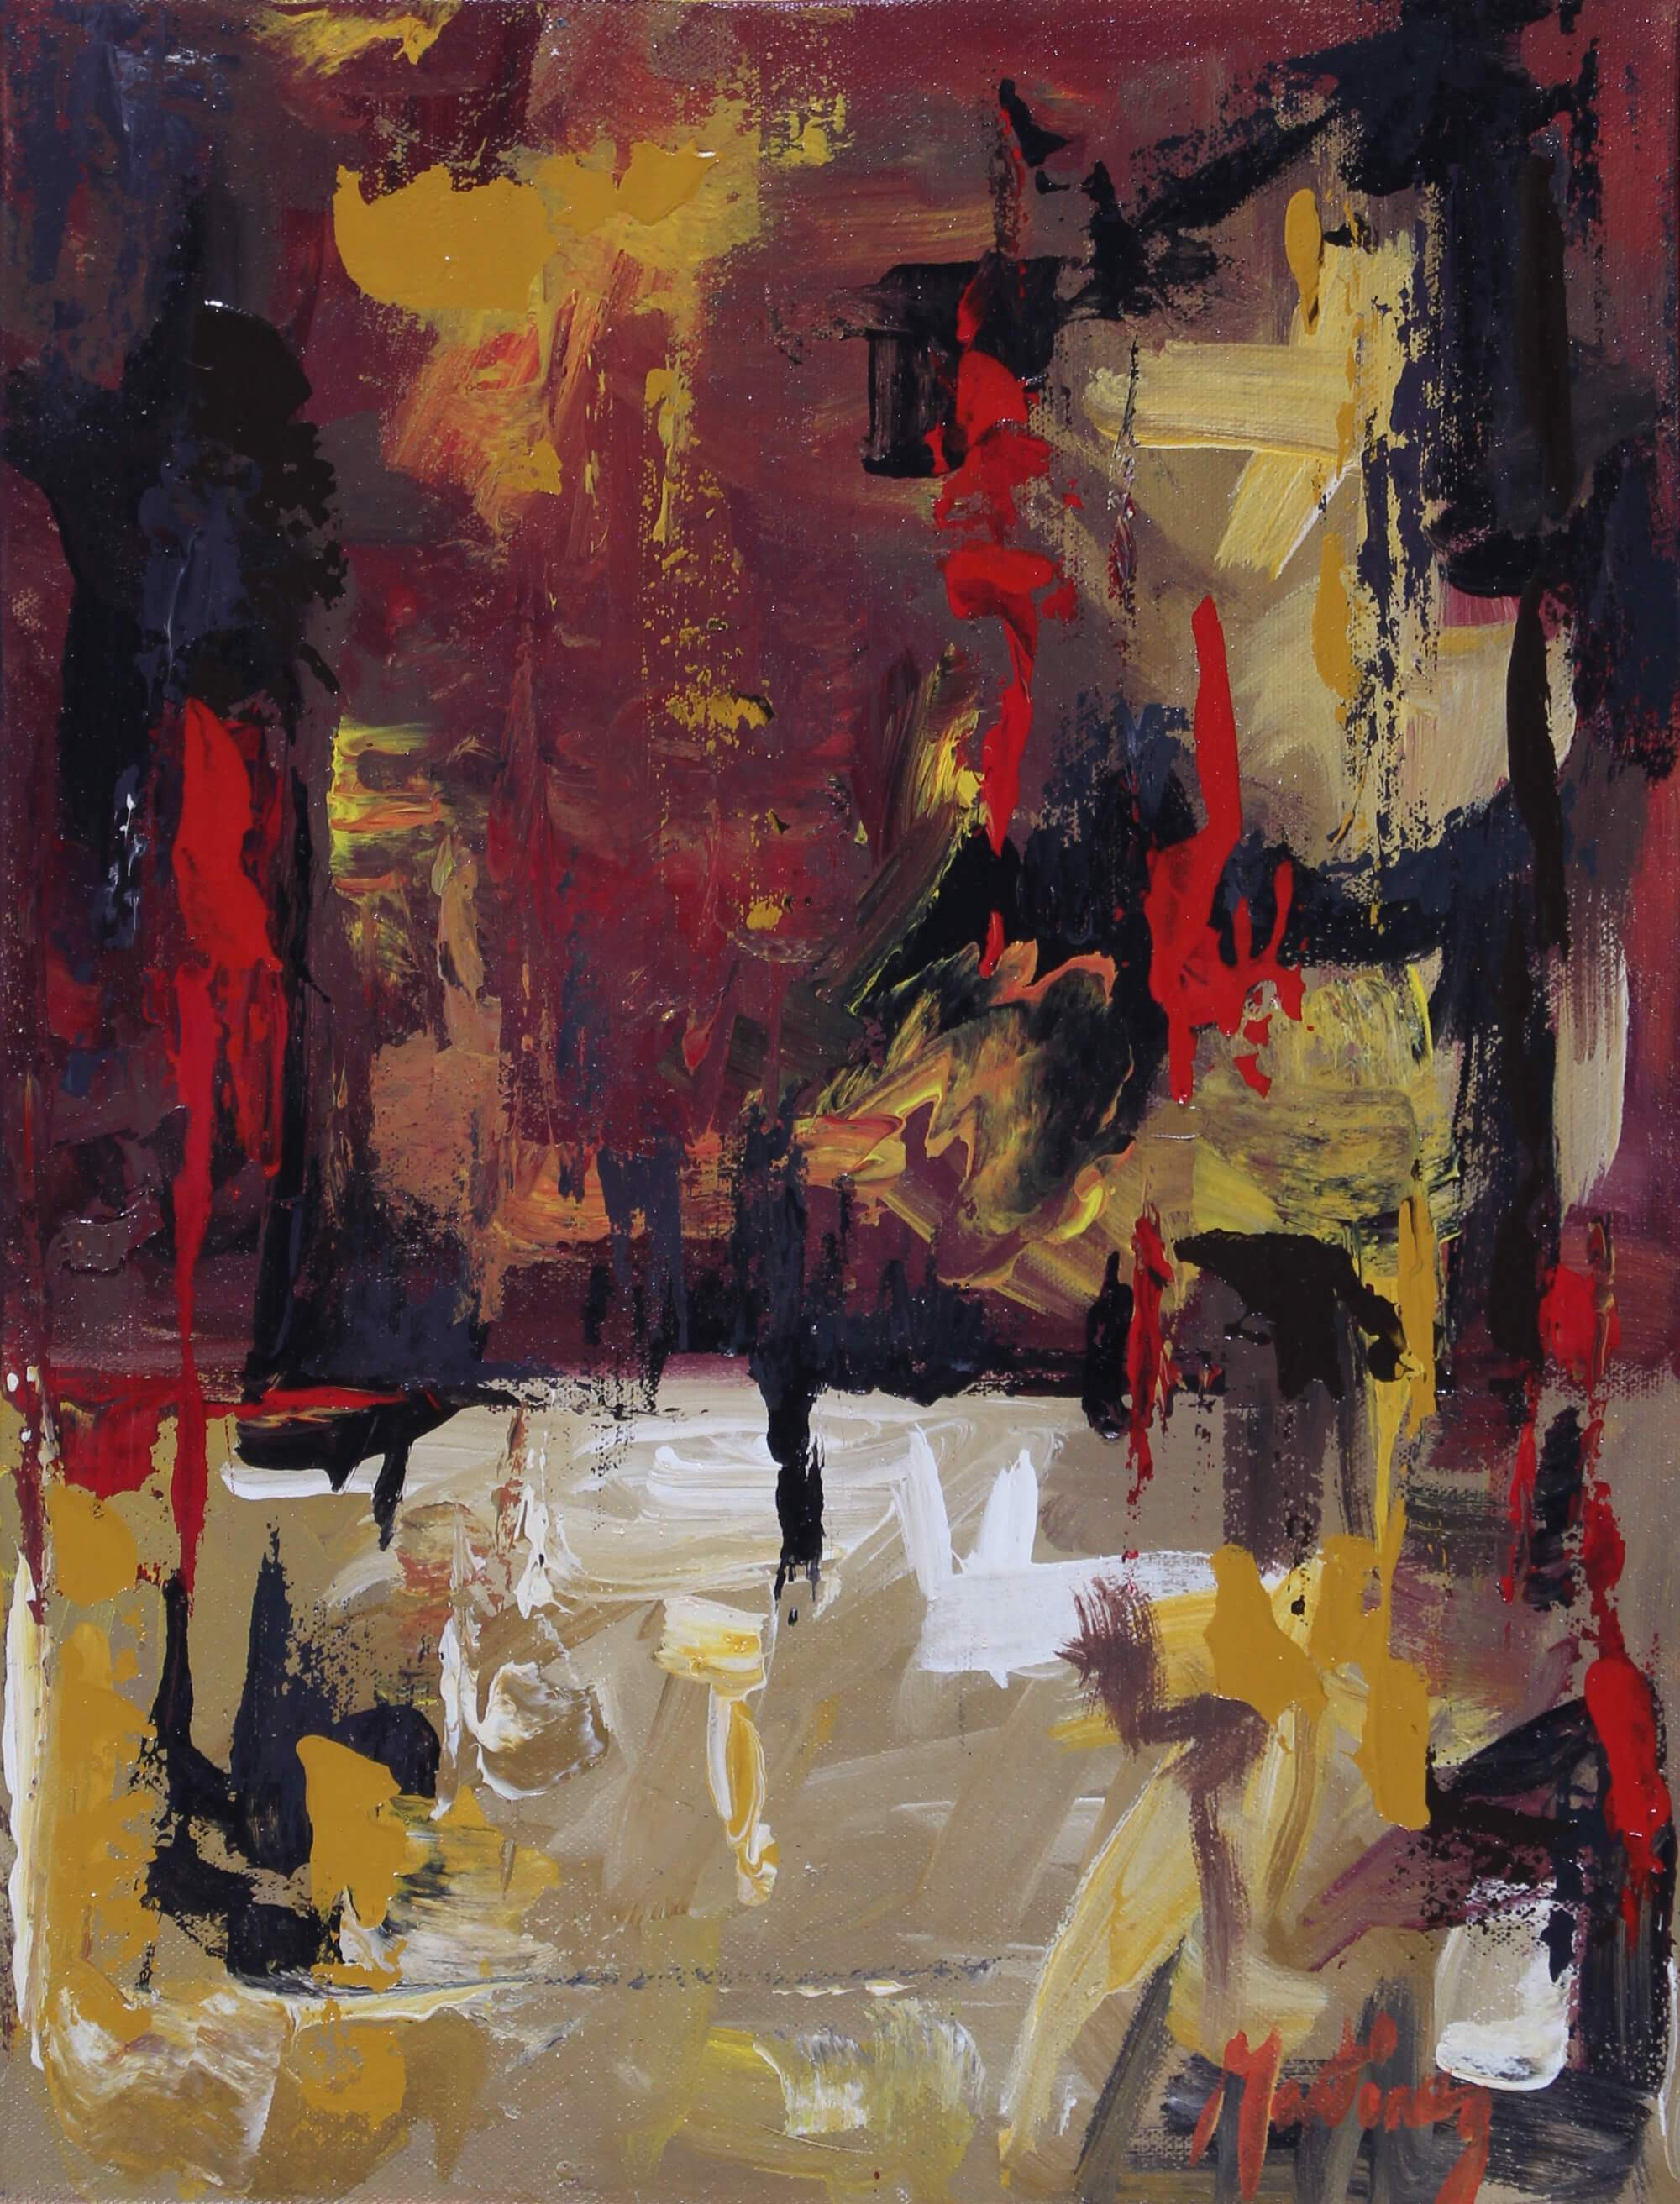 Abstract acrylic painting of brush strokes of red, black, white, and yellow representing an identity crisis by Joe Martínez.